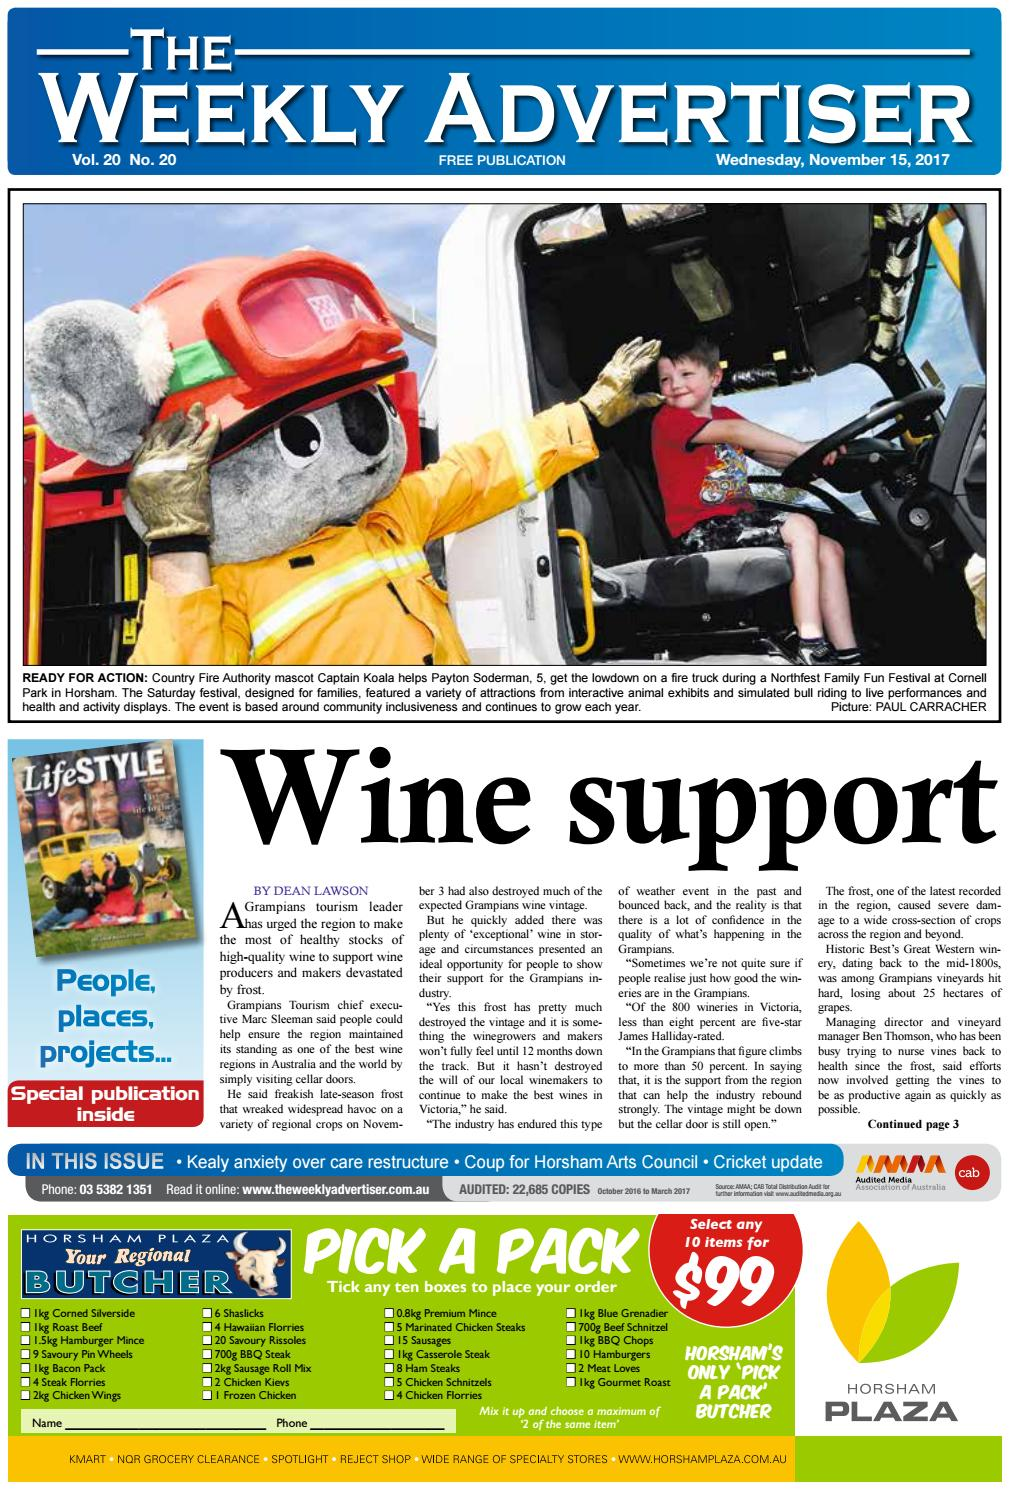 d2bce85a90 The Weekly Advertiser - Wednesday